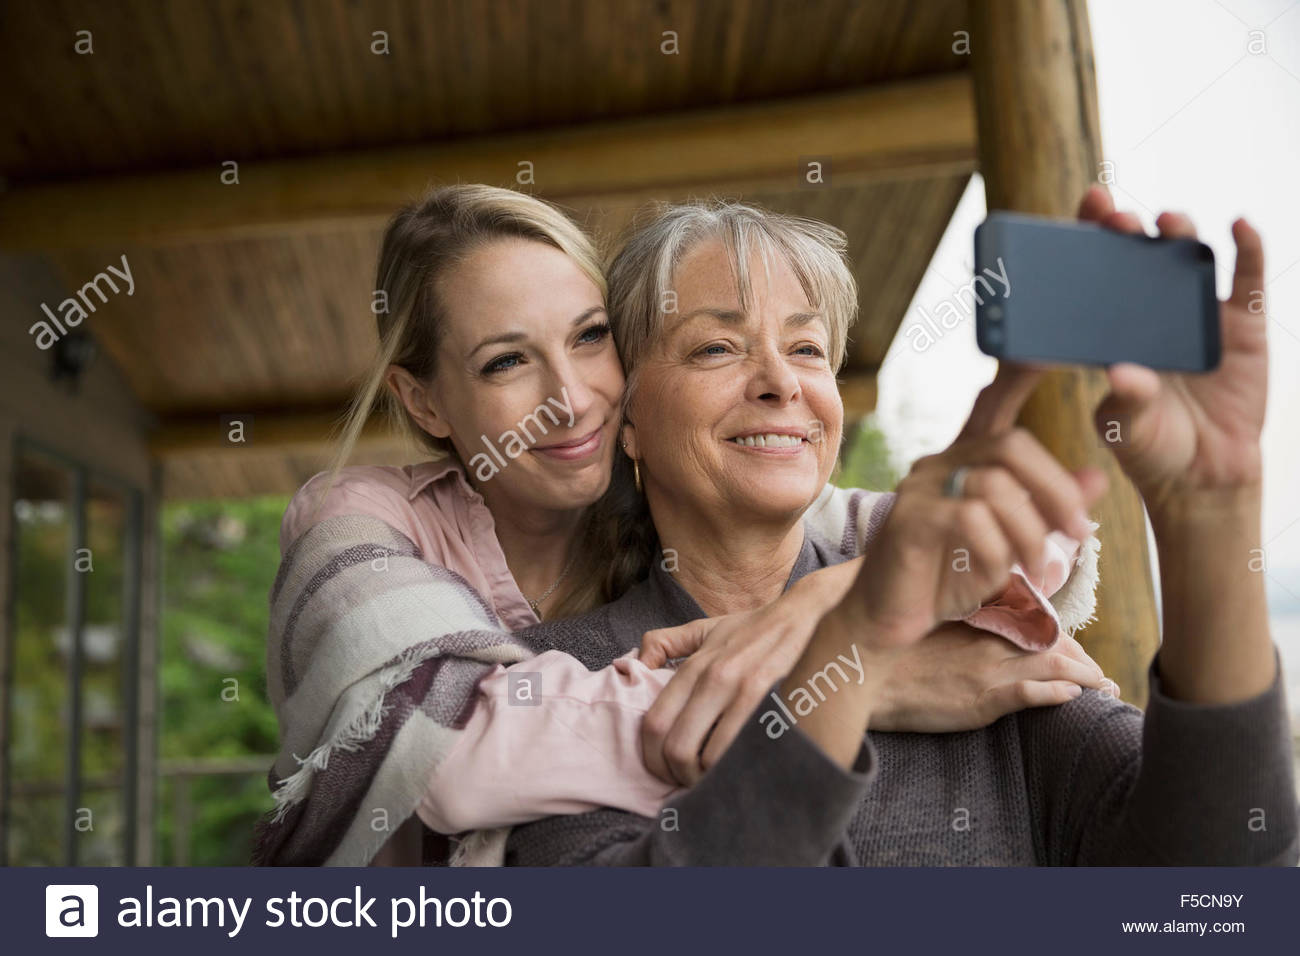 Mother and daughter hugging taking selfie - Stock Image